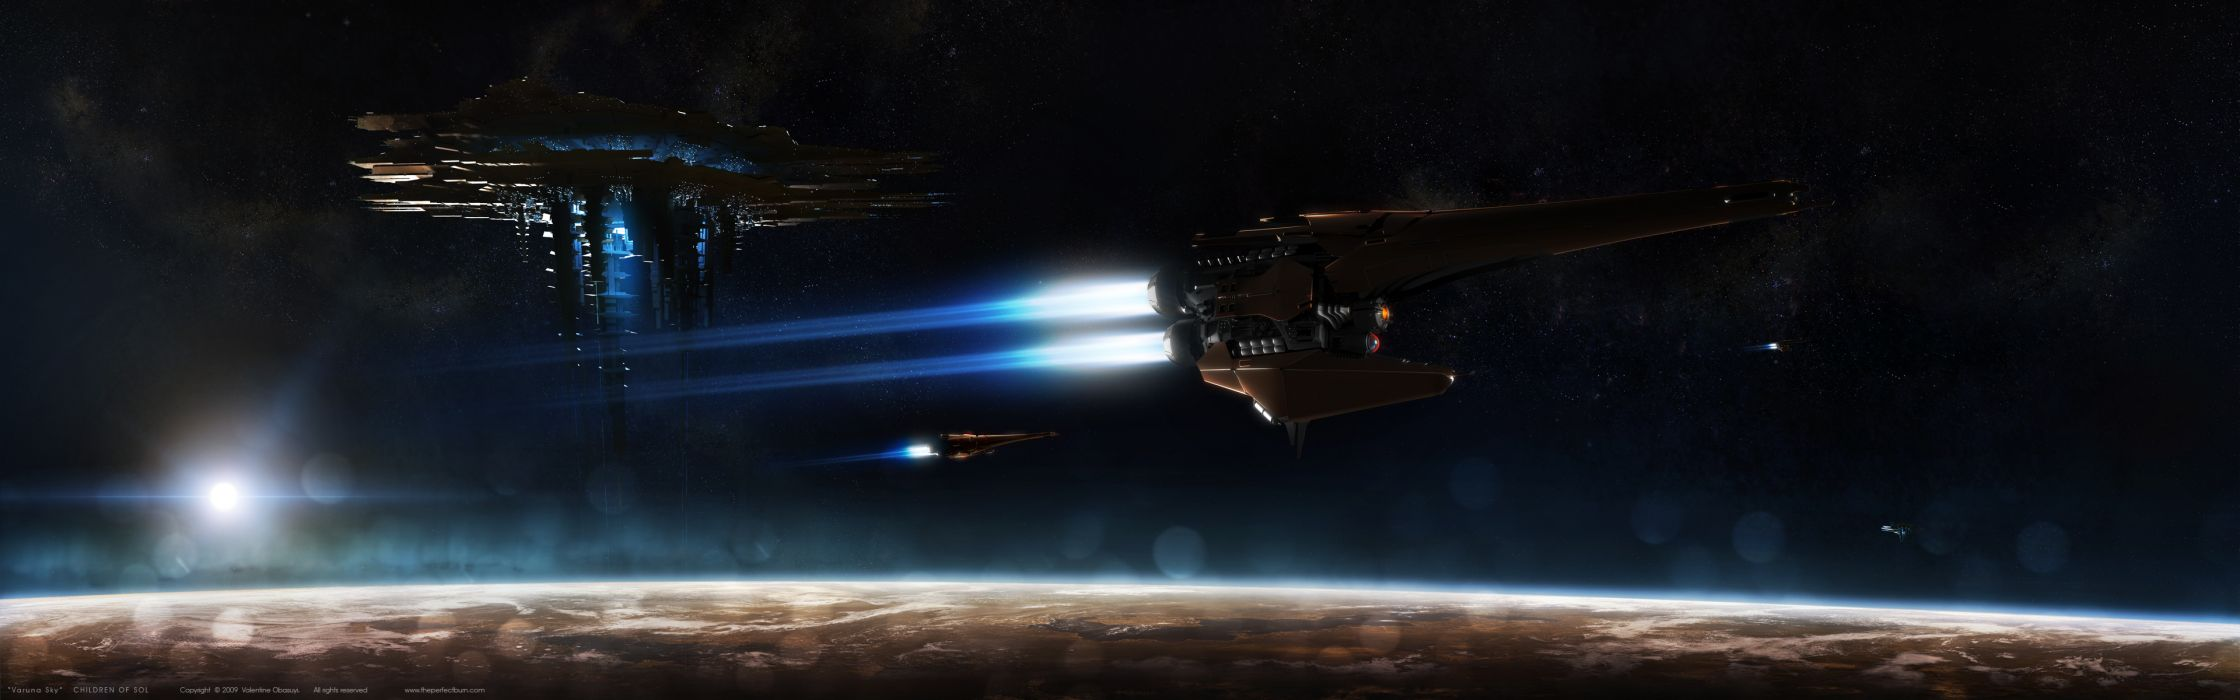 Outer space planets spaceships space station vehicles wallpaper